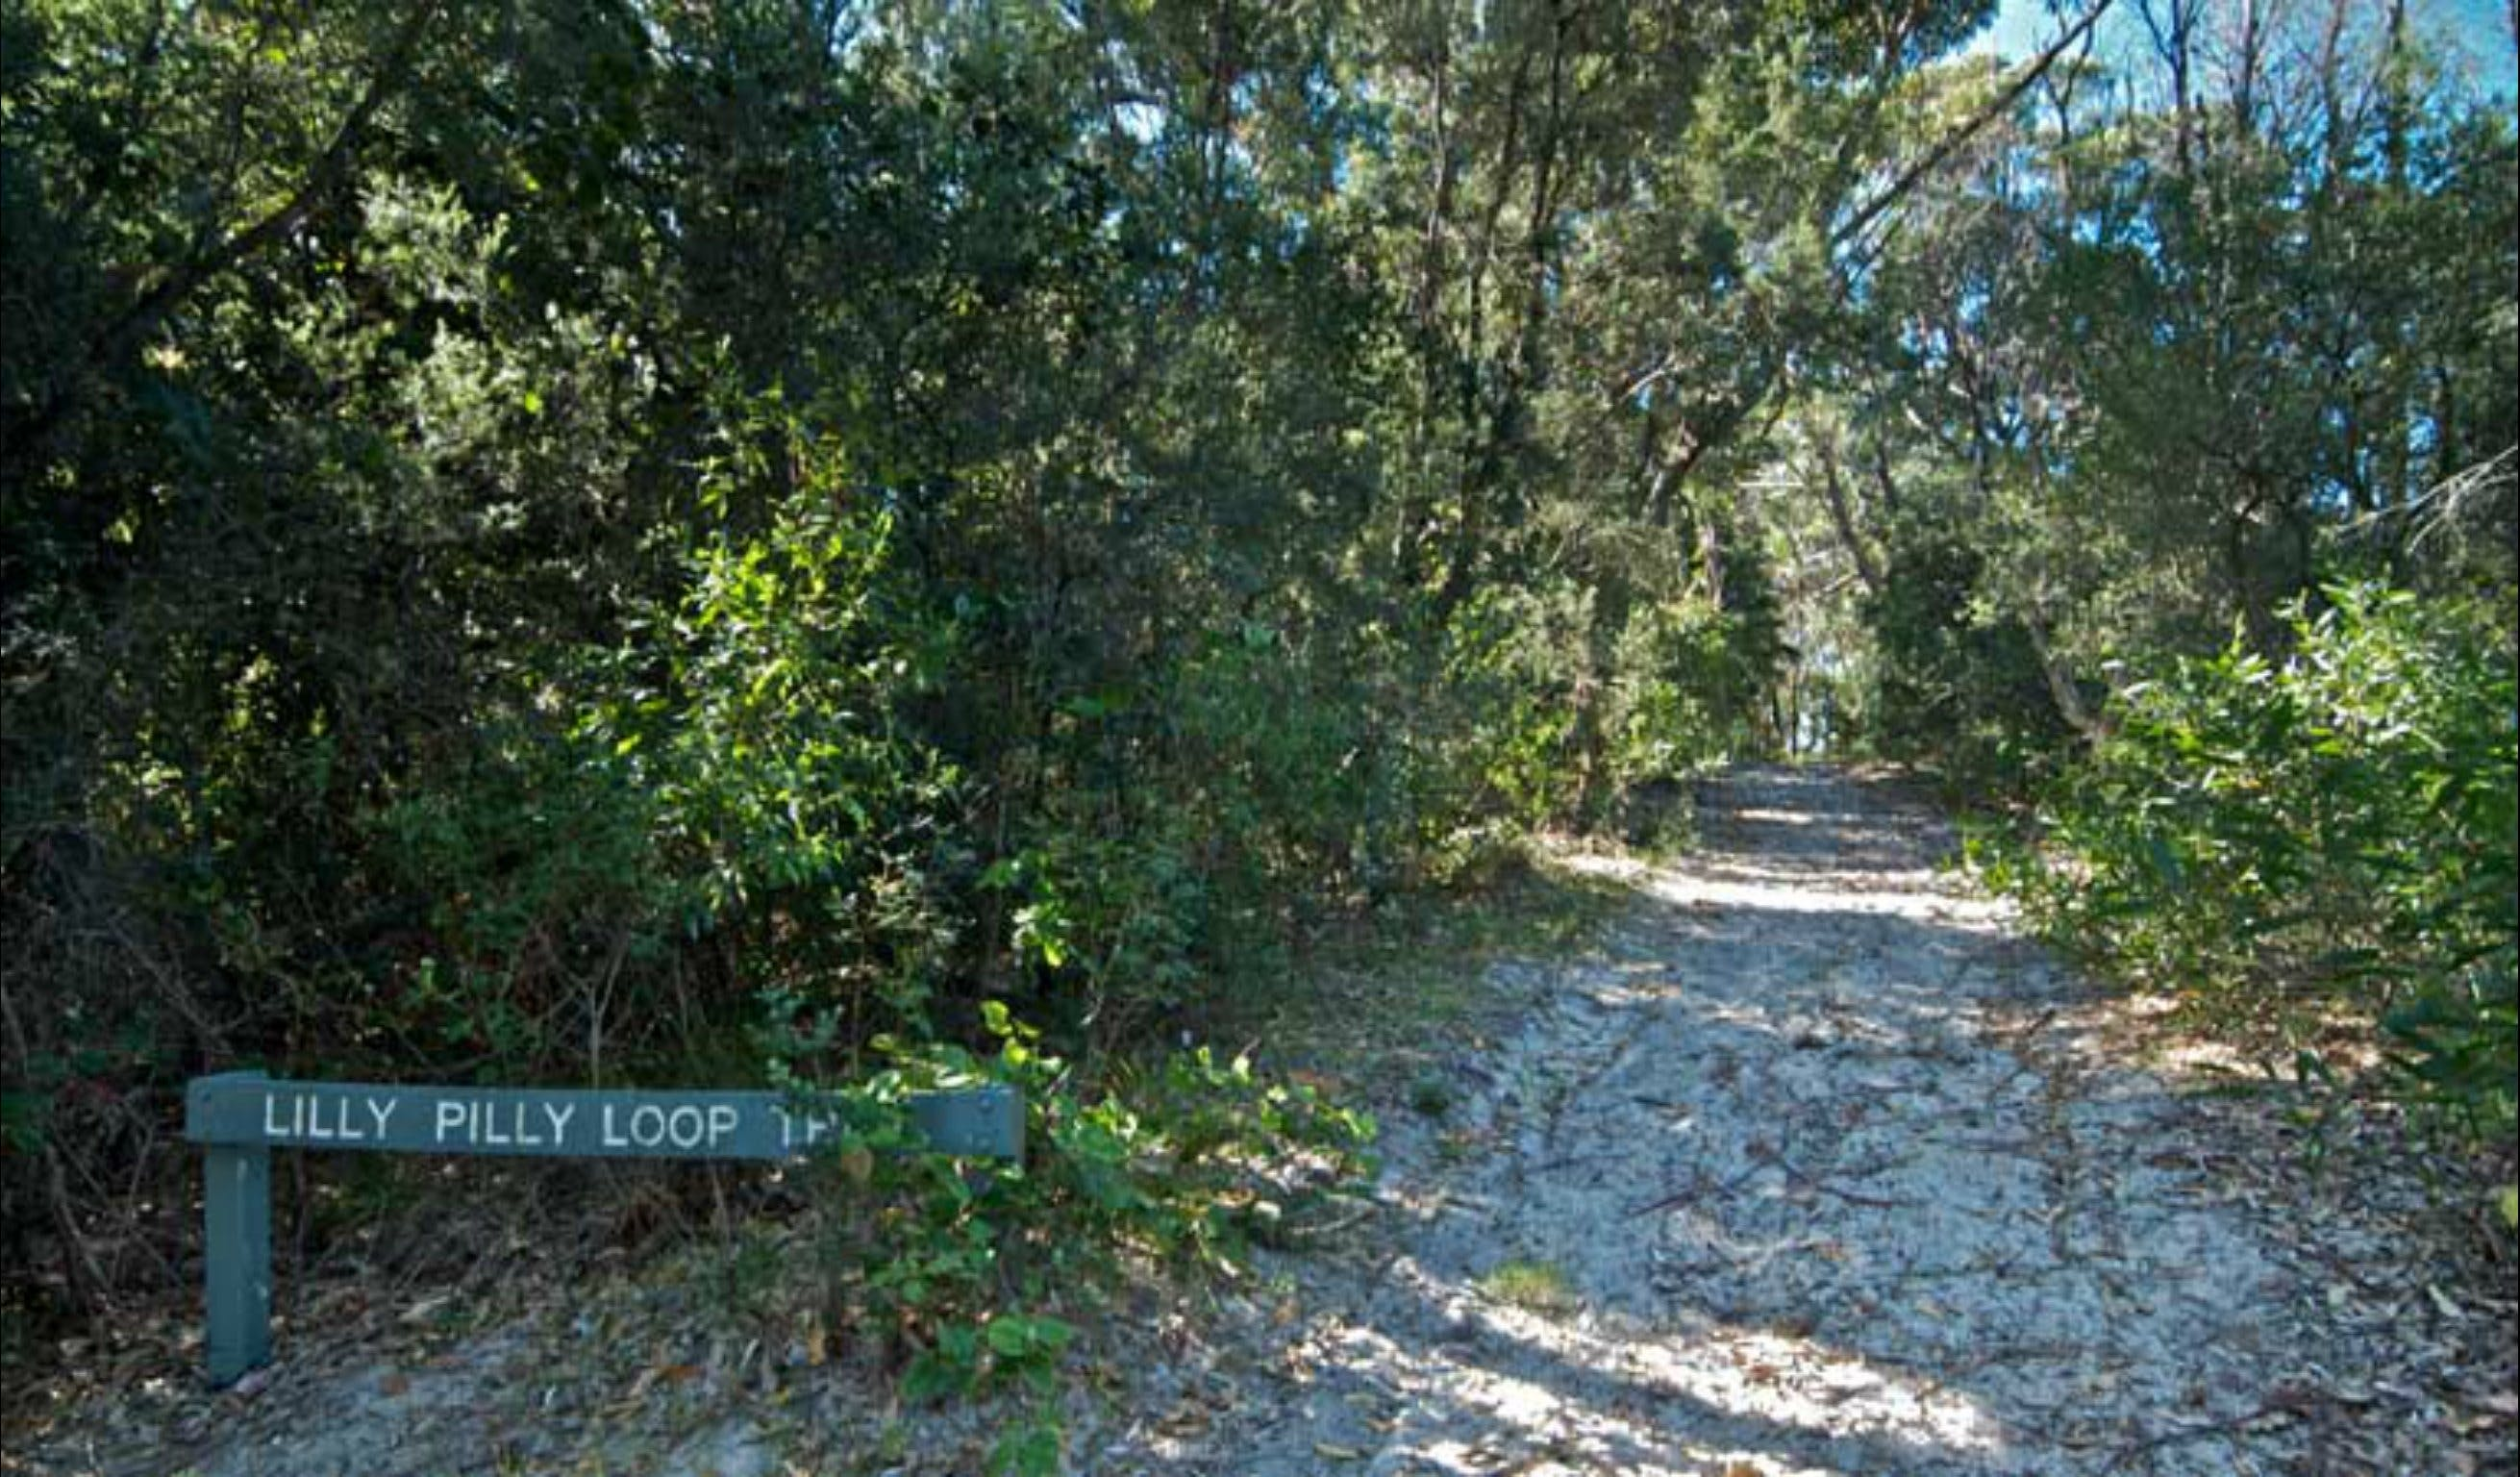 Lillypilly loop trail - Accommodation Cooktown